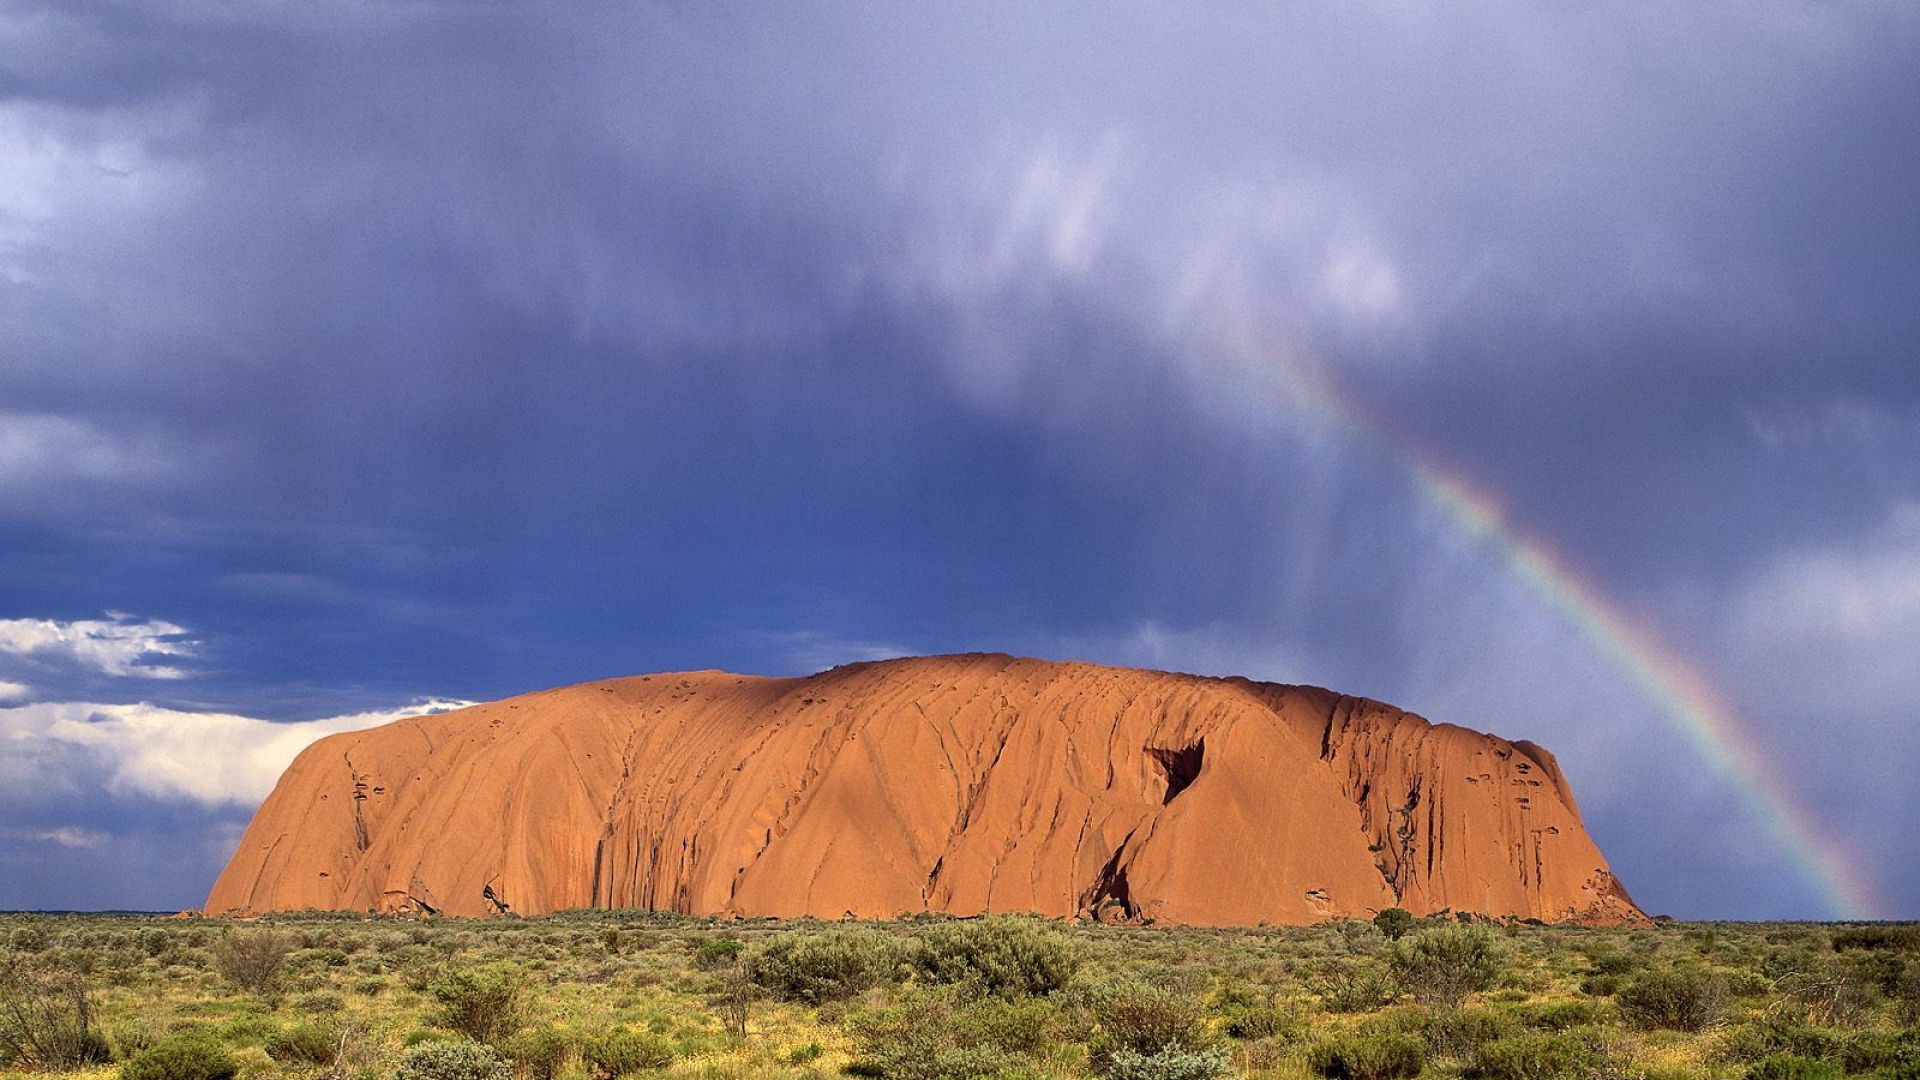 Download wallpaper 1920x1080 rainbow australia after for Special landmarks